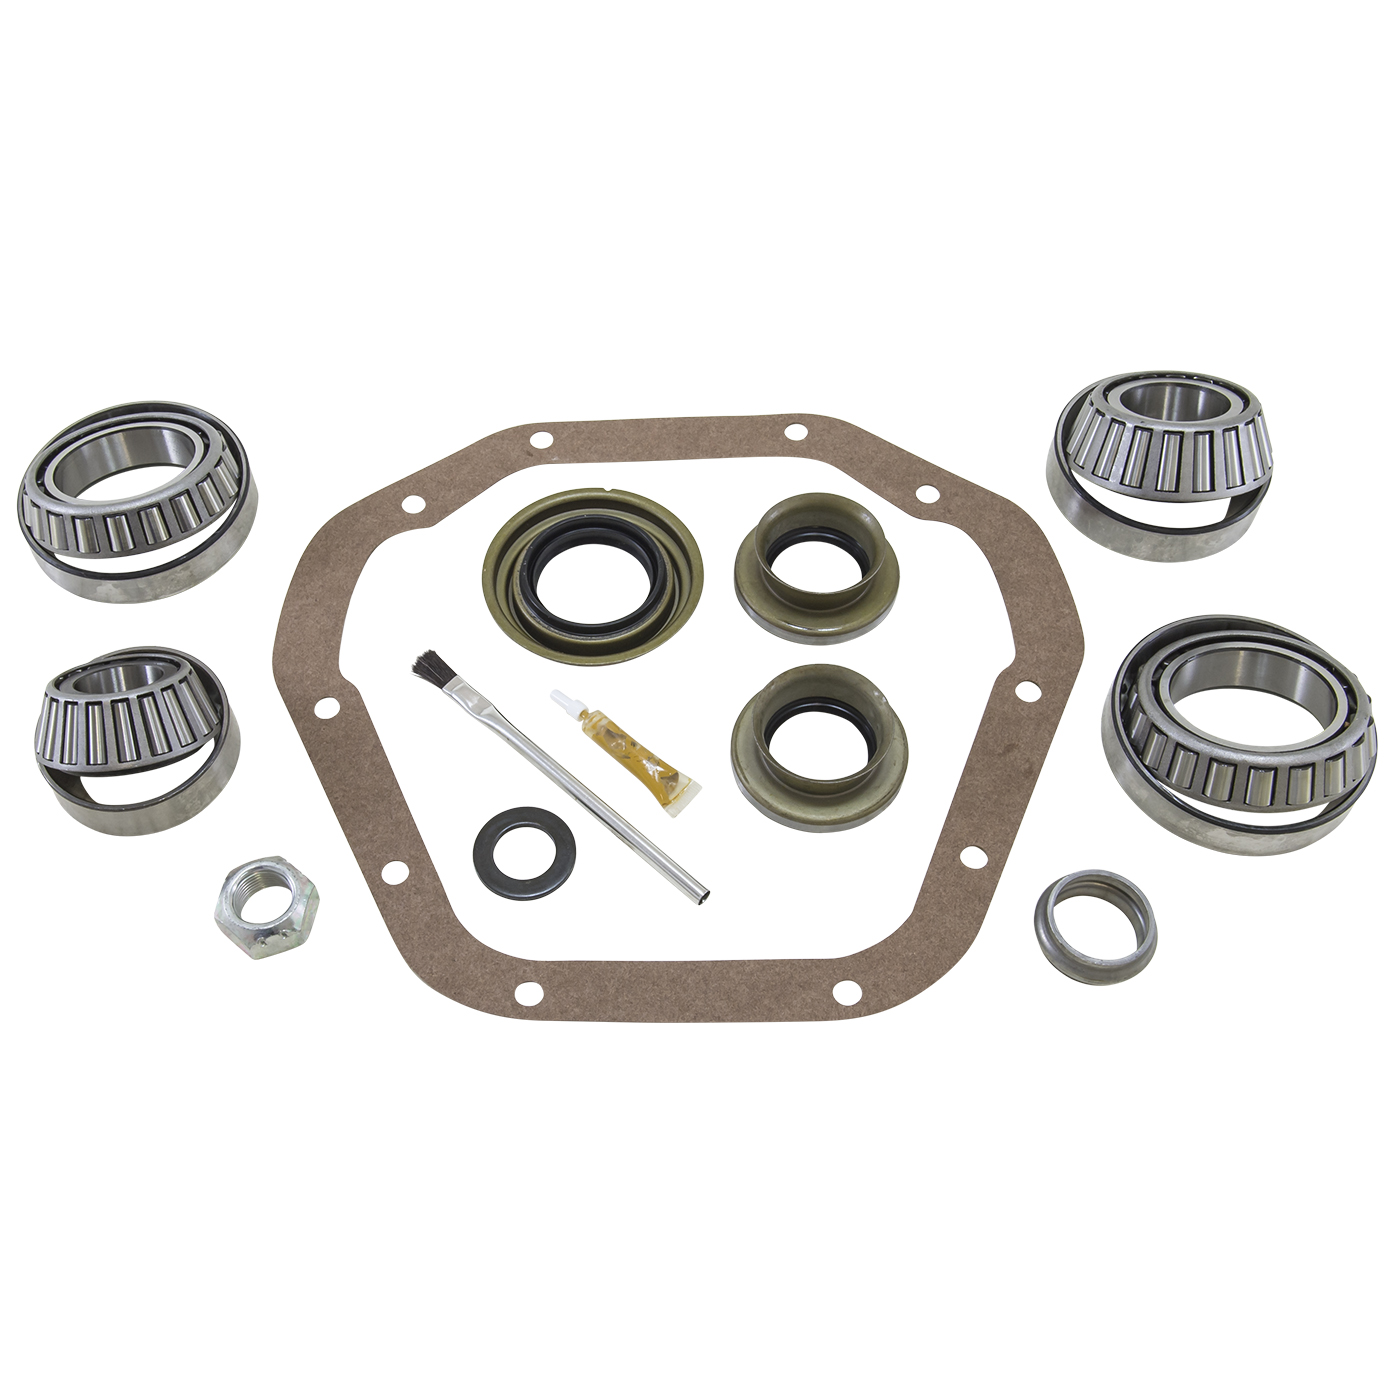 ZBKD70-U - USA Standard Bearing kit for Dana 70U